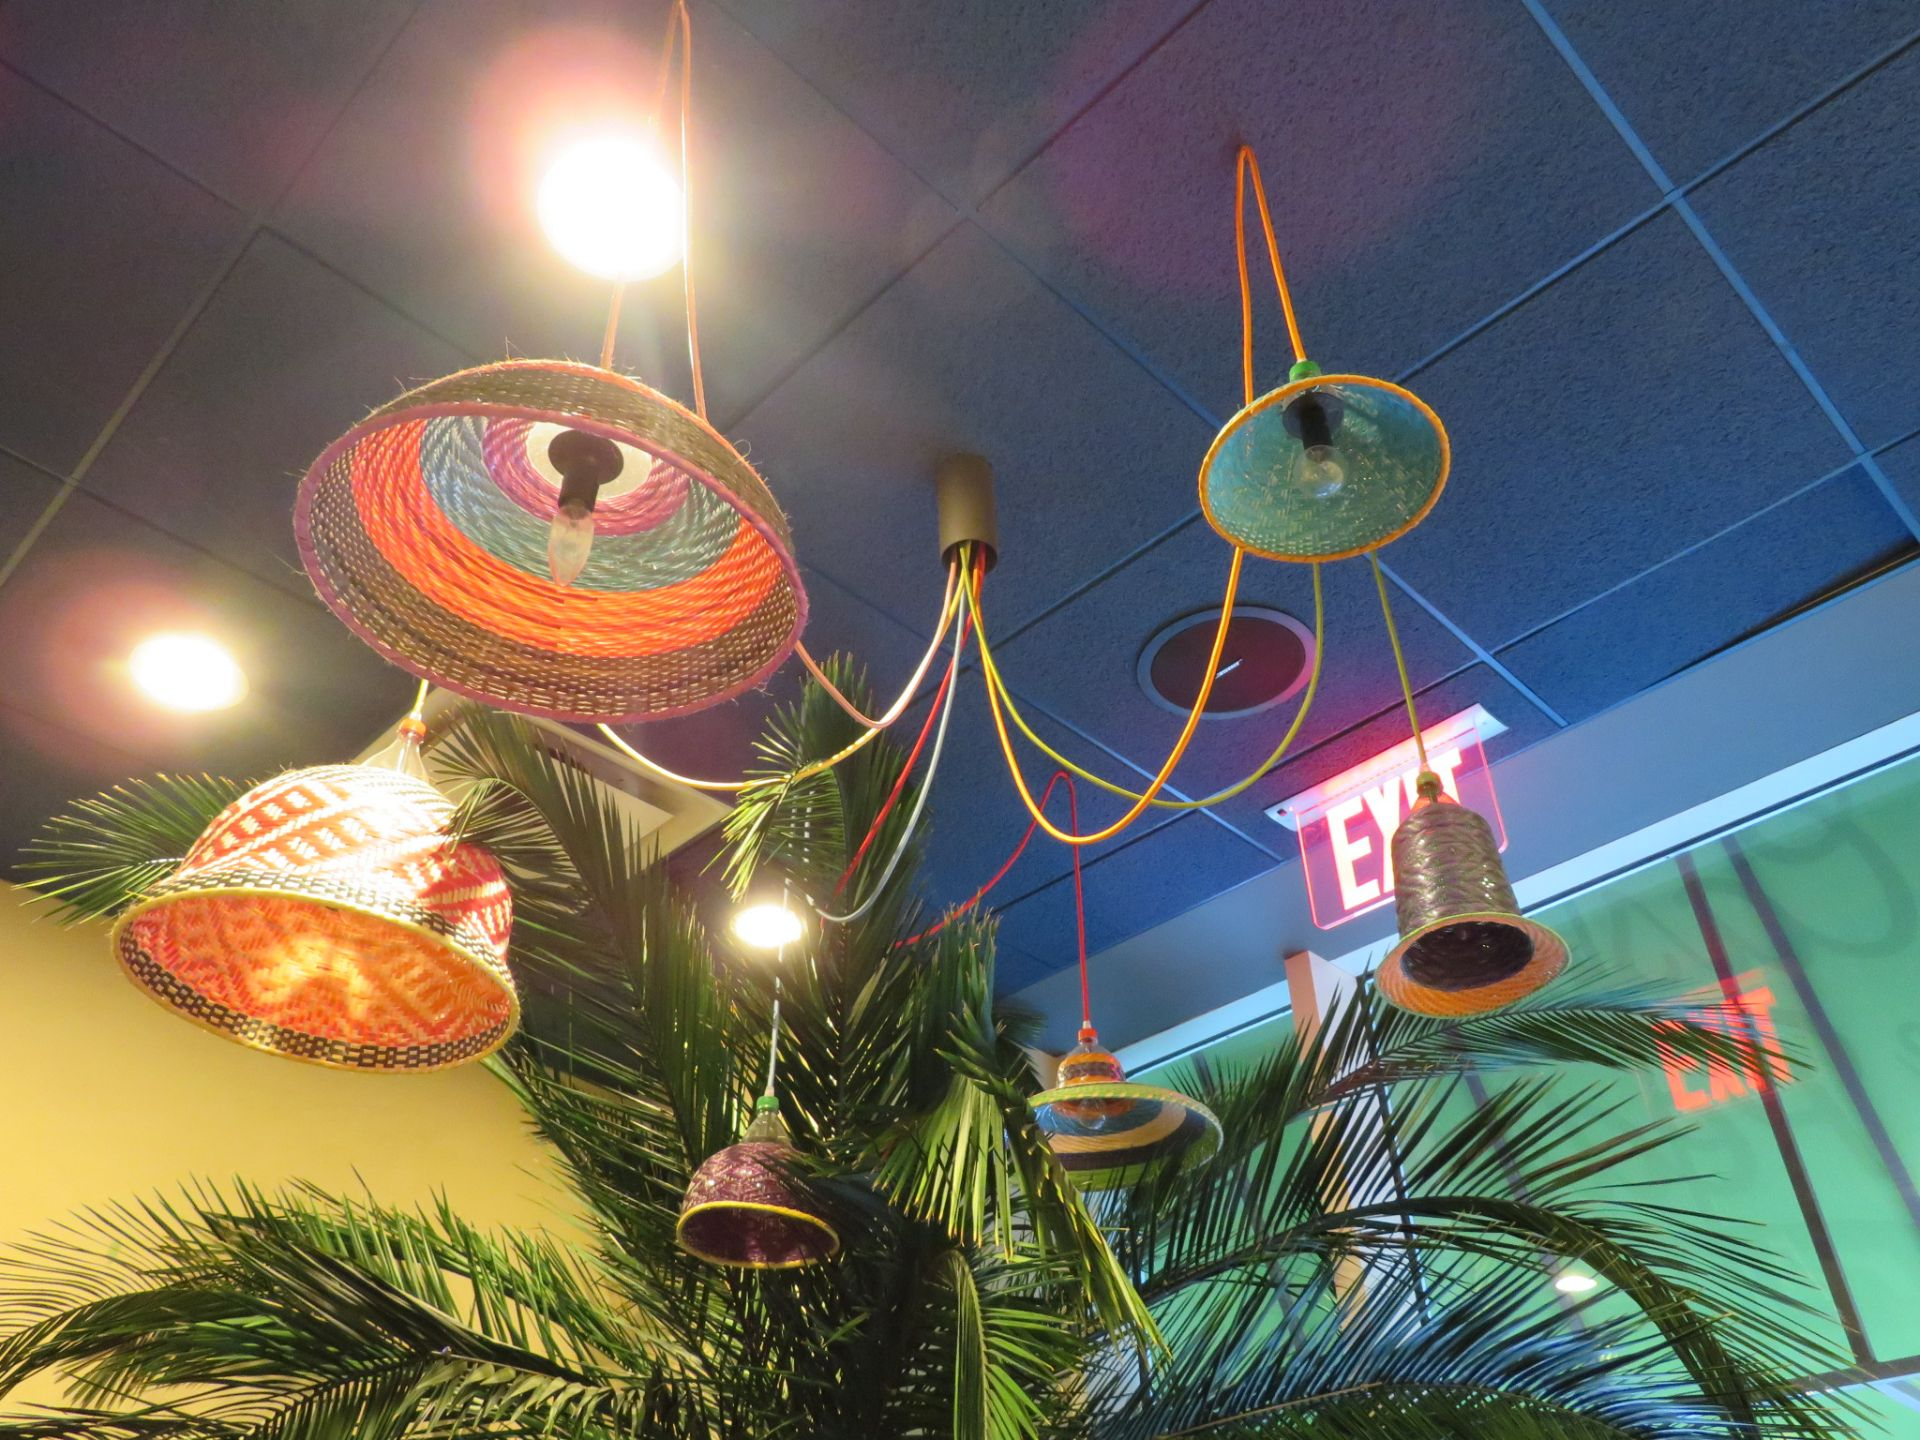 Lot 66 - (Lot) Basket Chandeliers Over Jeep in Take Out Area